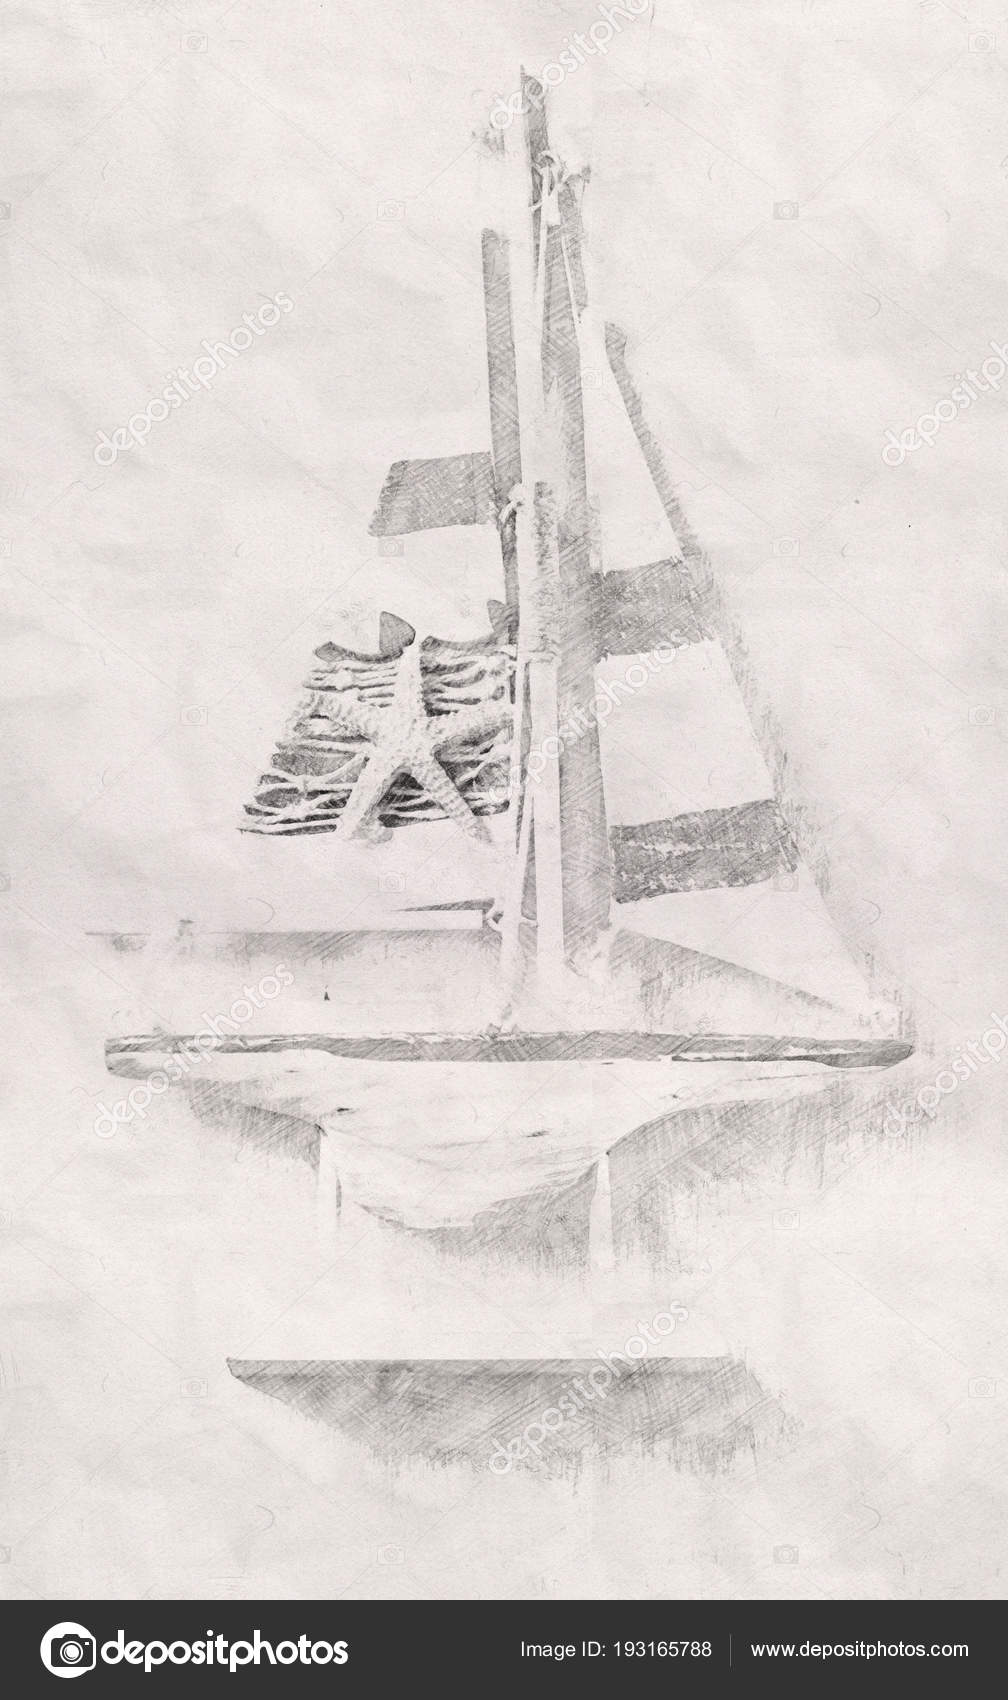 Abstract background of boat pencil sketch painting style black and white photo by